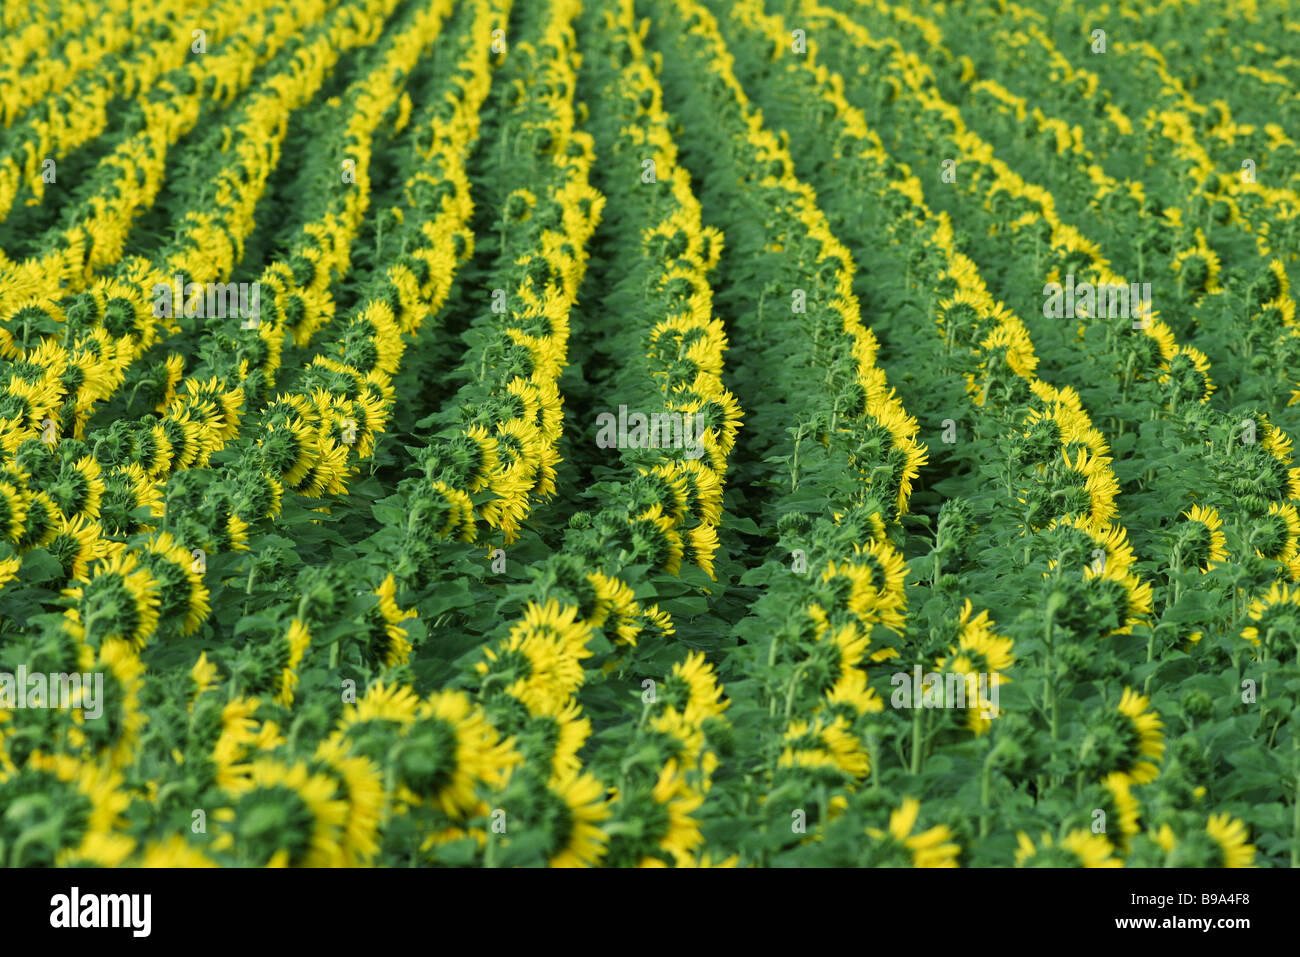 Sunflowers growing in field, full frame - Stock Image